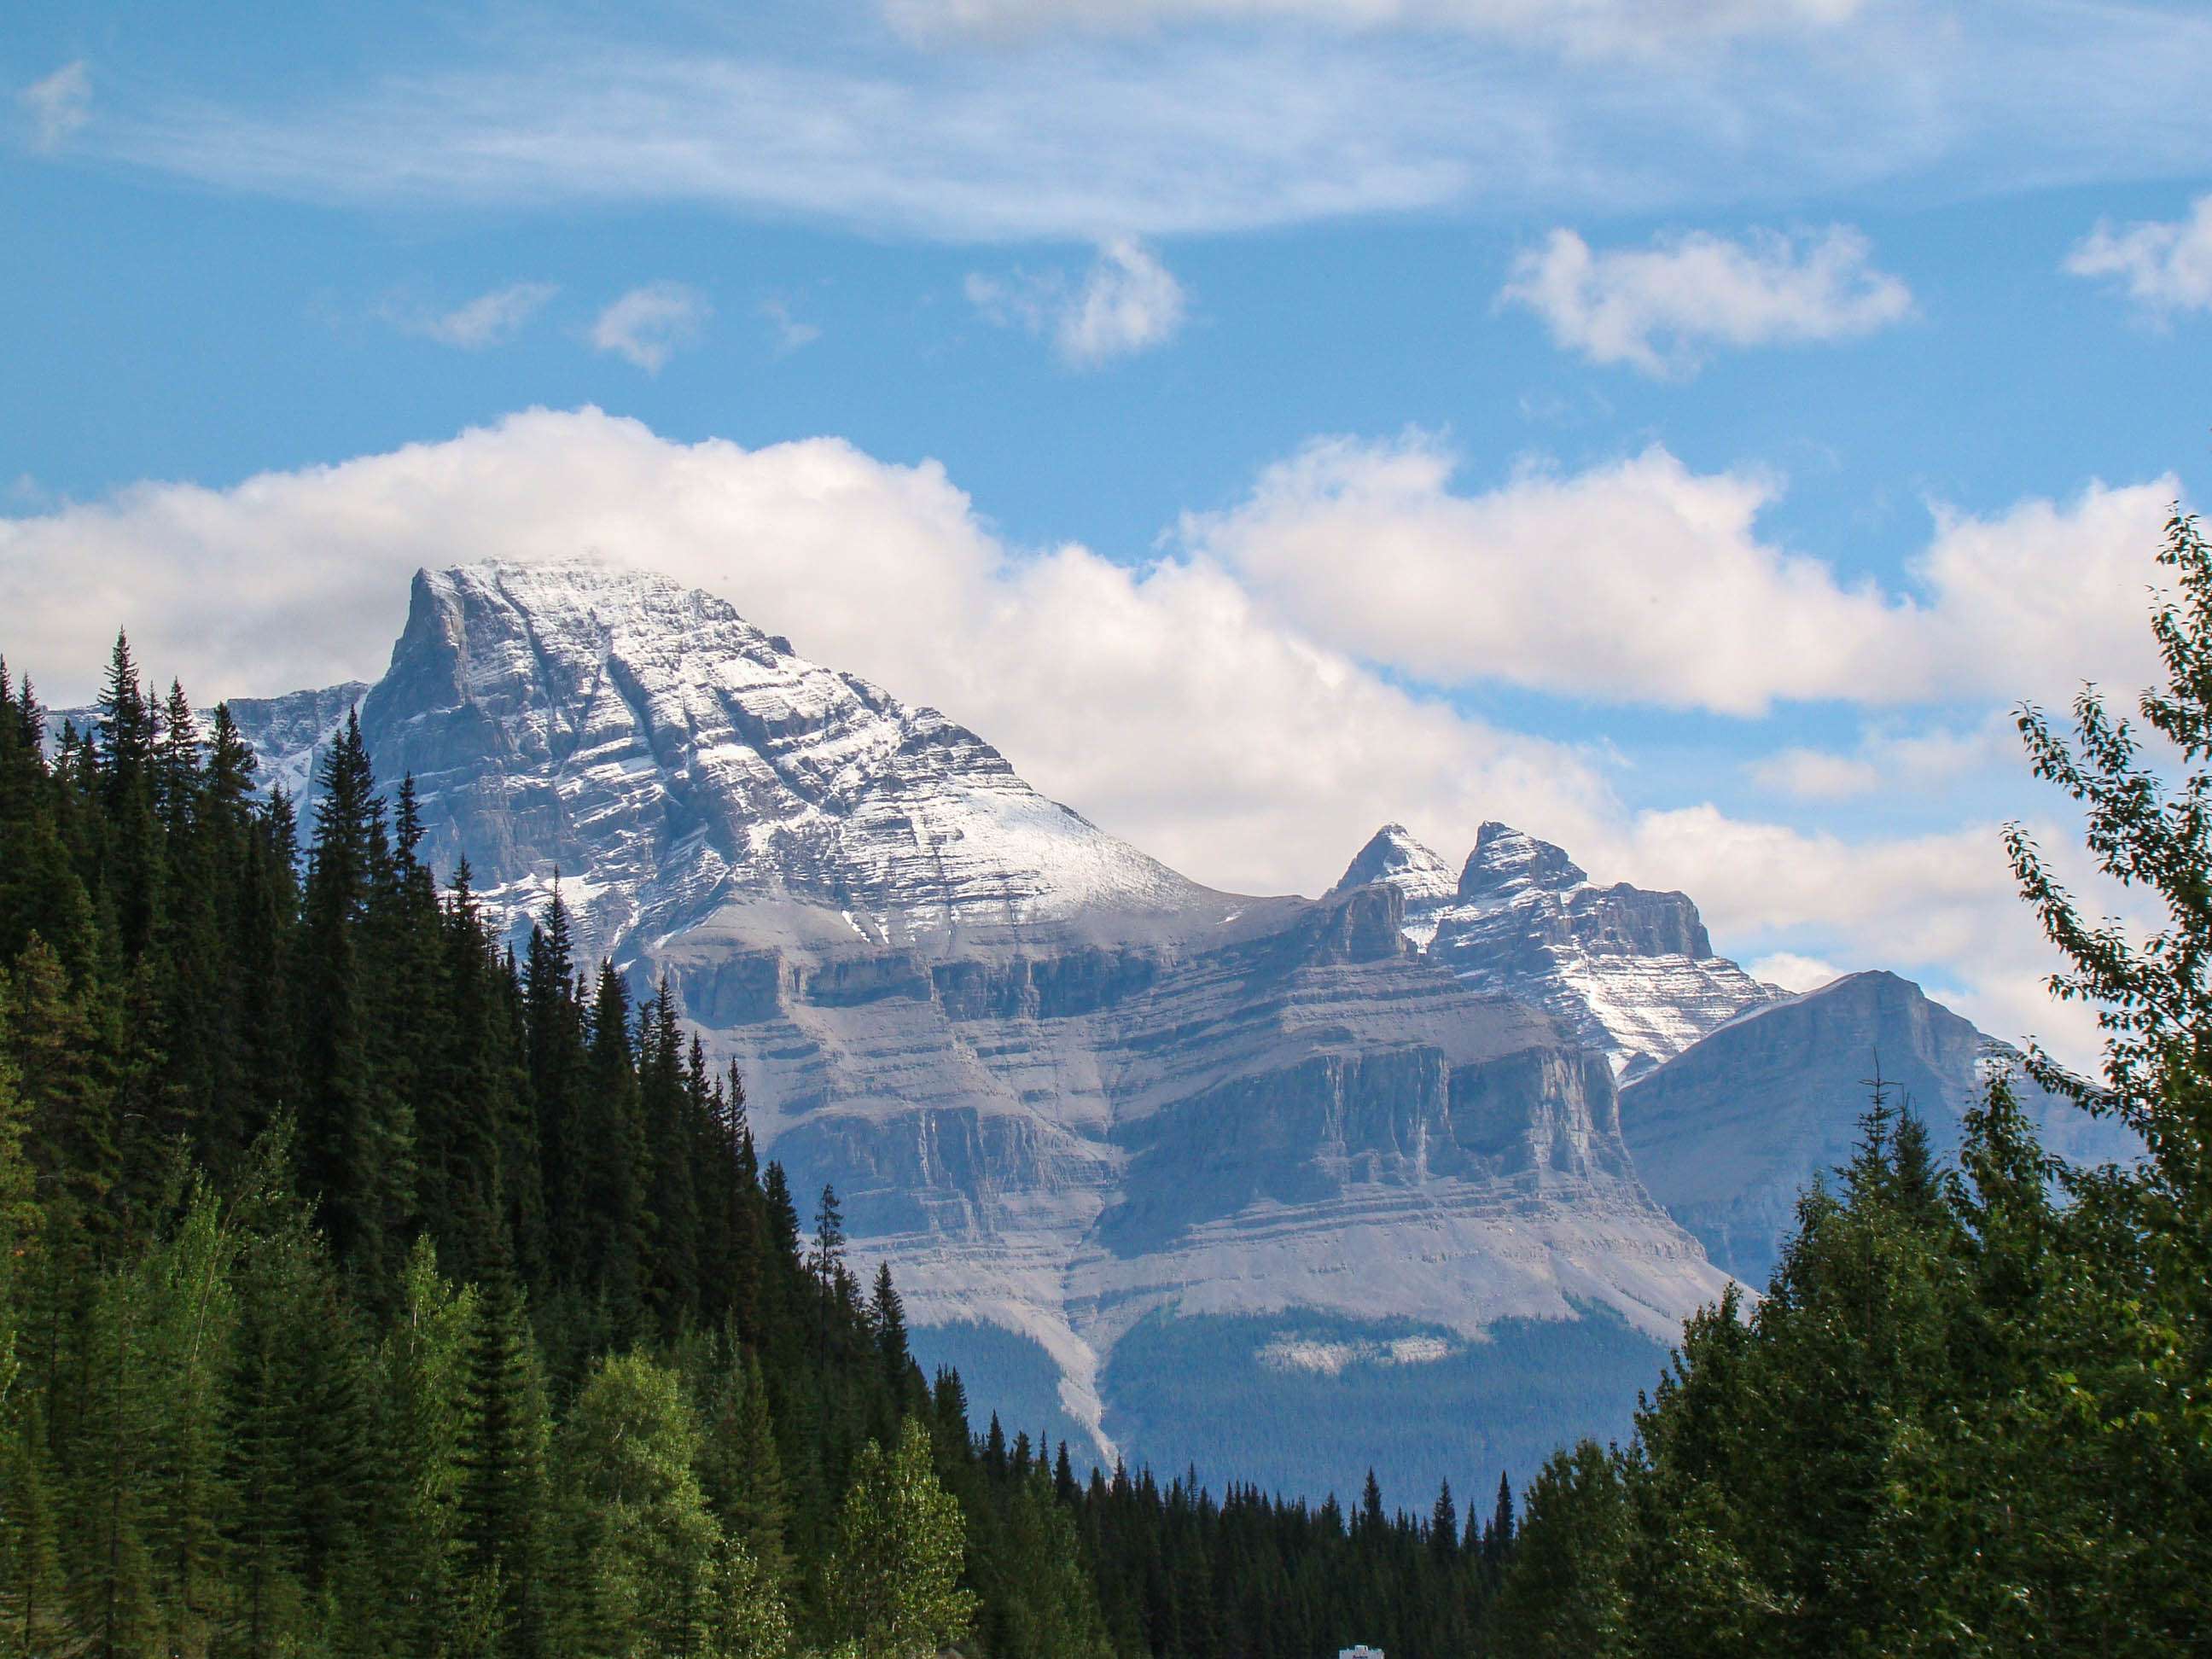 Banff National Park - Alberta Canada